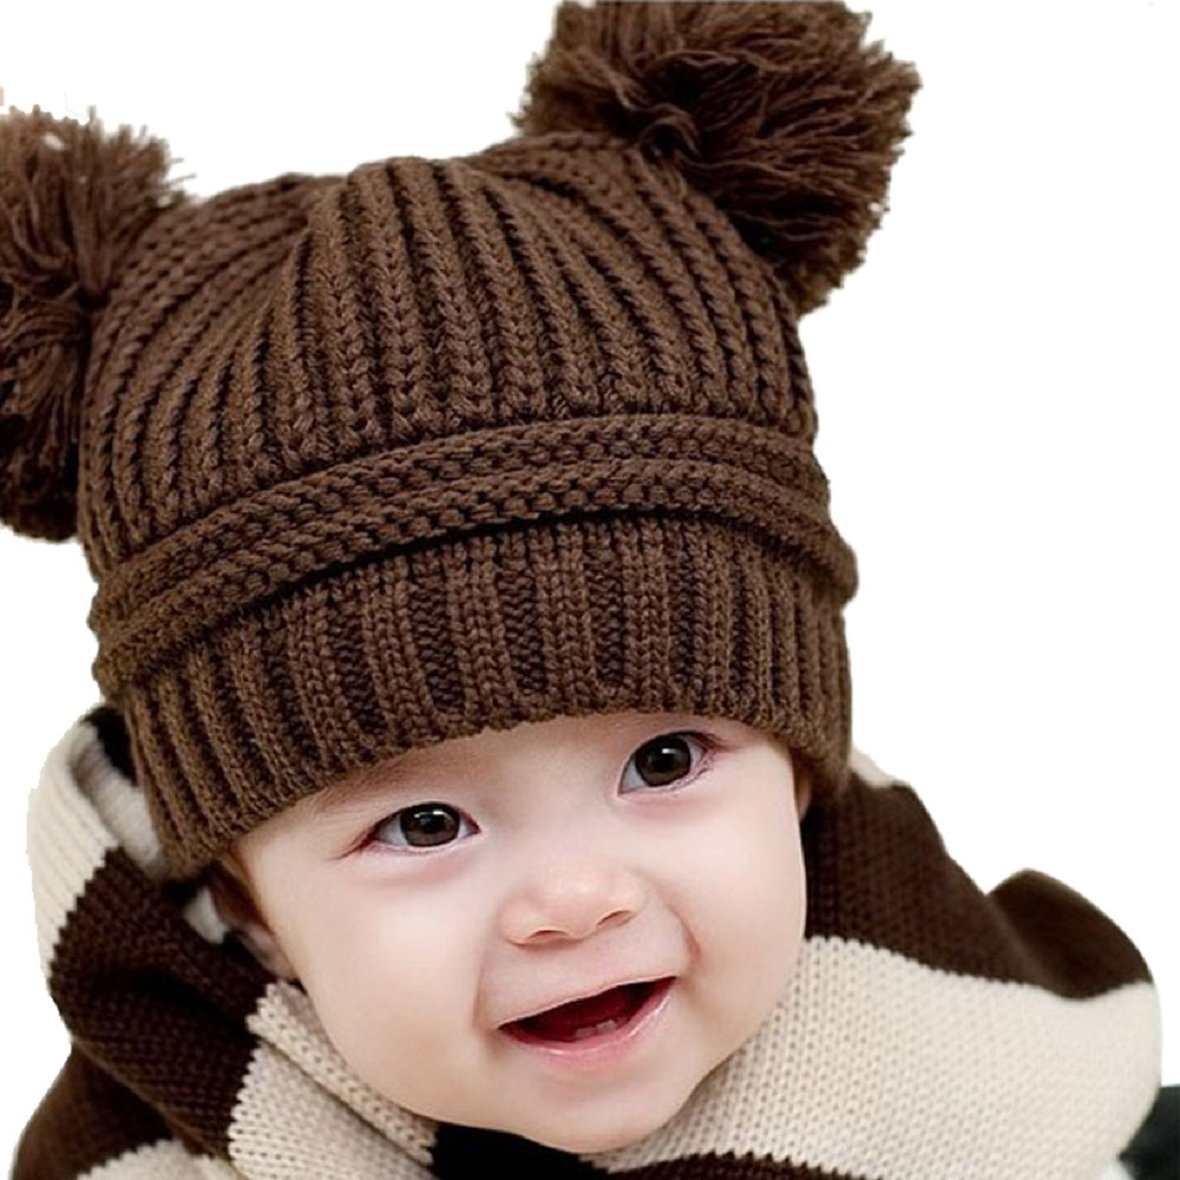 4851301f542 Amazon.com  Tonsee Cute Baby Kids Girl Boy Dual Balls Warm Winter Knitted Cap  Hat Beanie (Coffee)  Baby